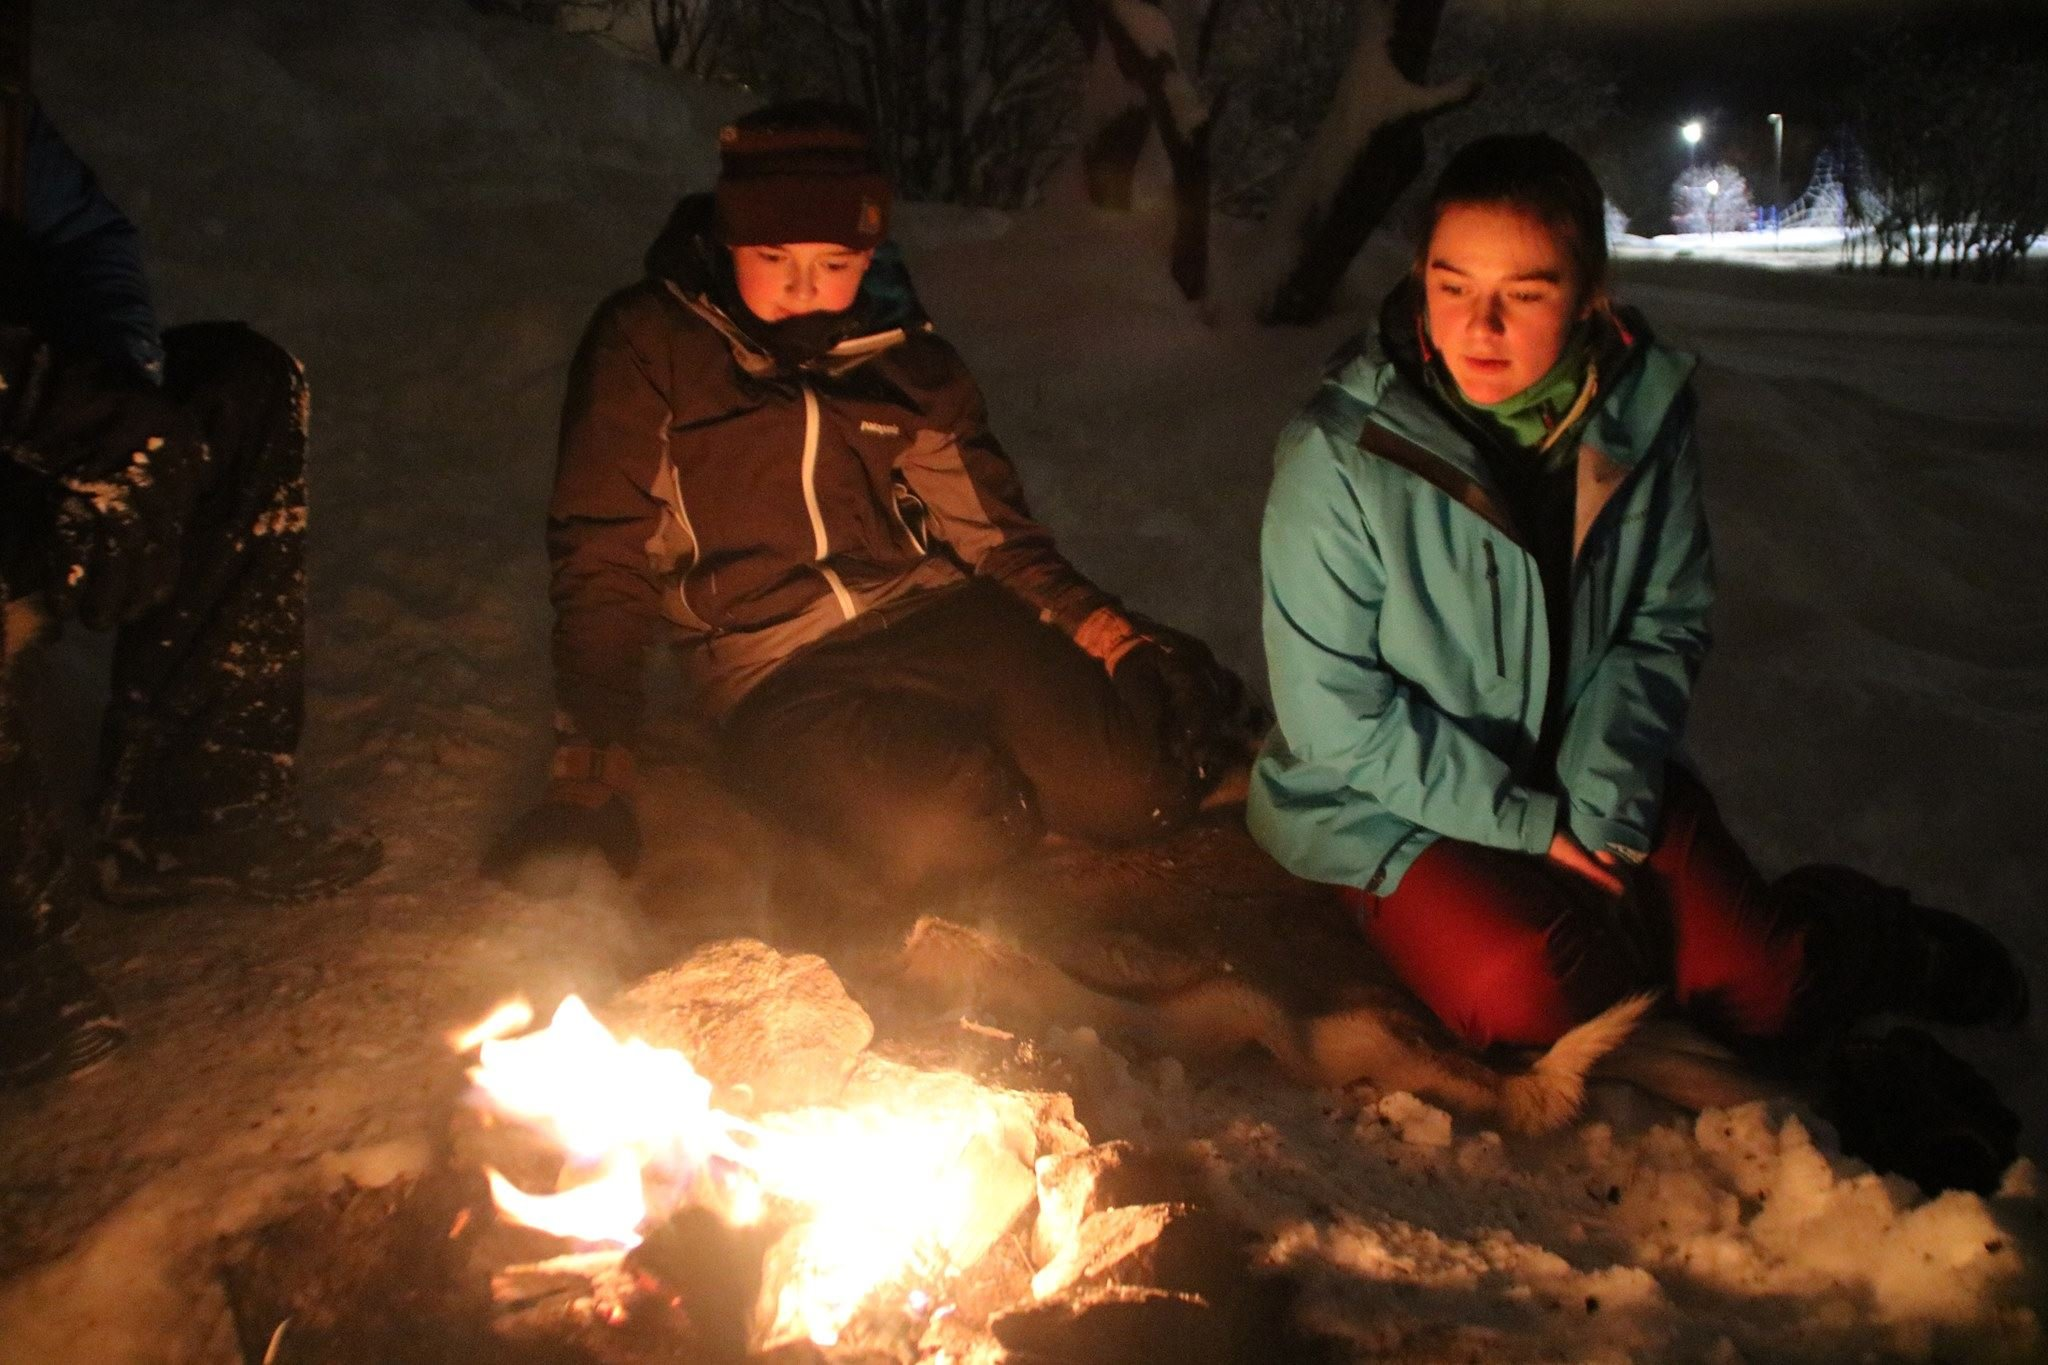 005. Evening snowshoe trip with a campfire - Tromsø Outdoor